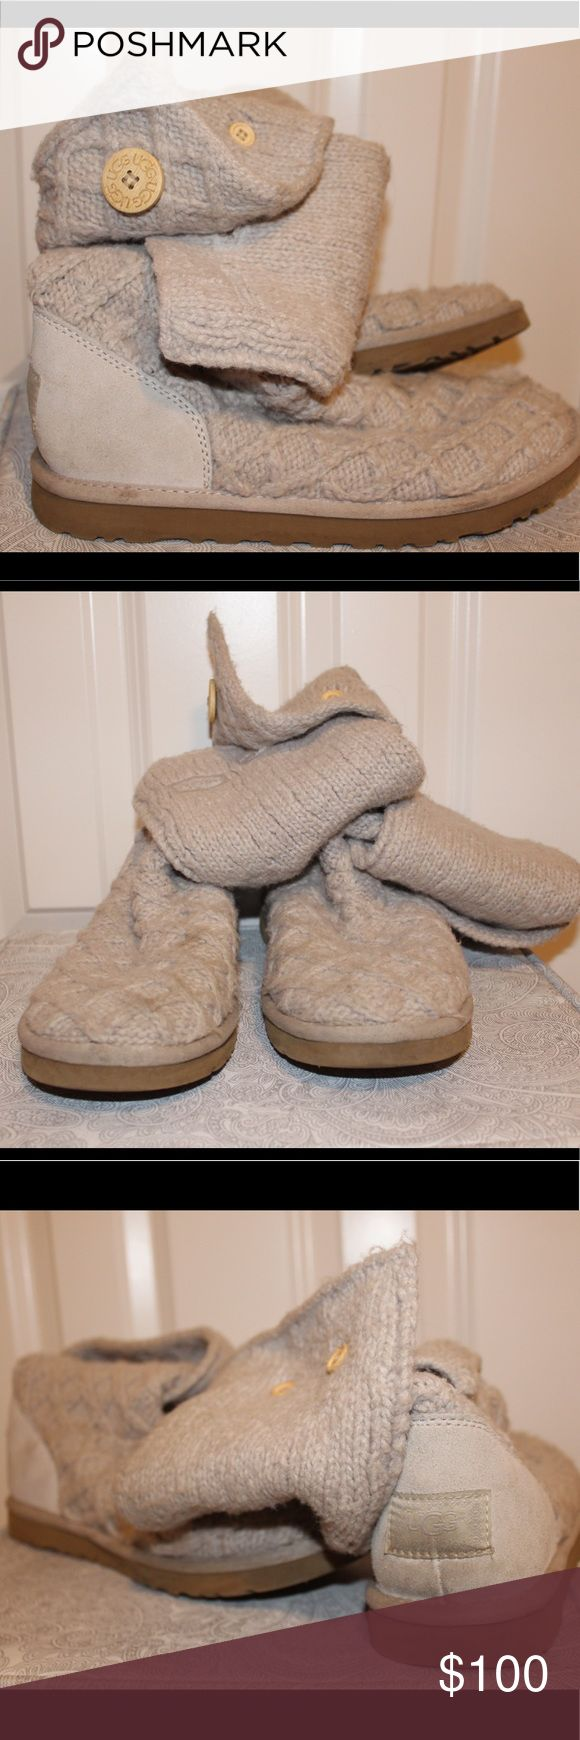 Knit Ugg Boots Grey knit Uggs. Size 10. Good condition. Small mark on top of right boot. Authentic. Purchased at Nordstrom. UGG Shoes Ankle Boots & Booties